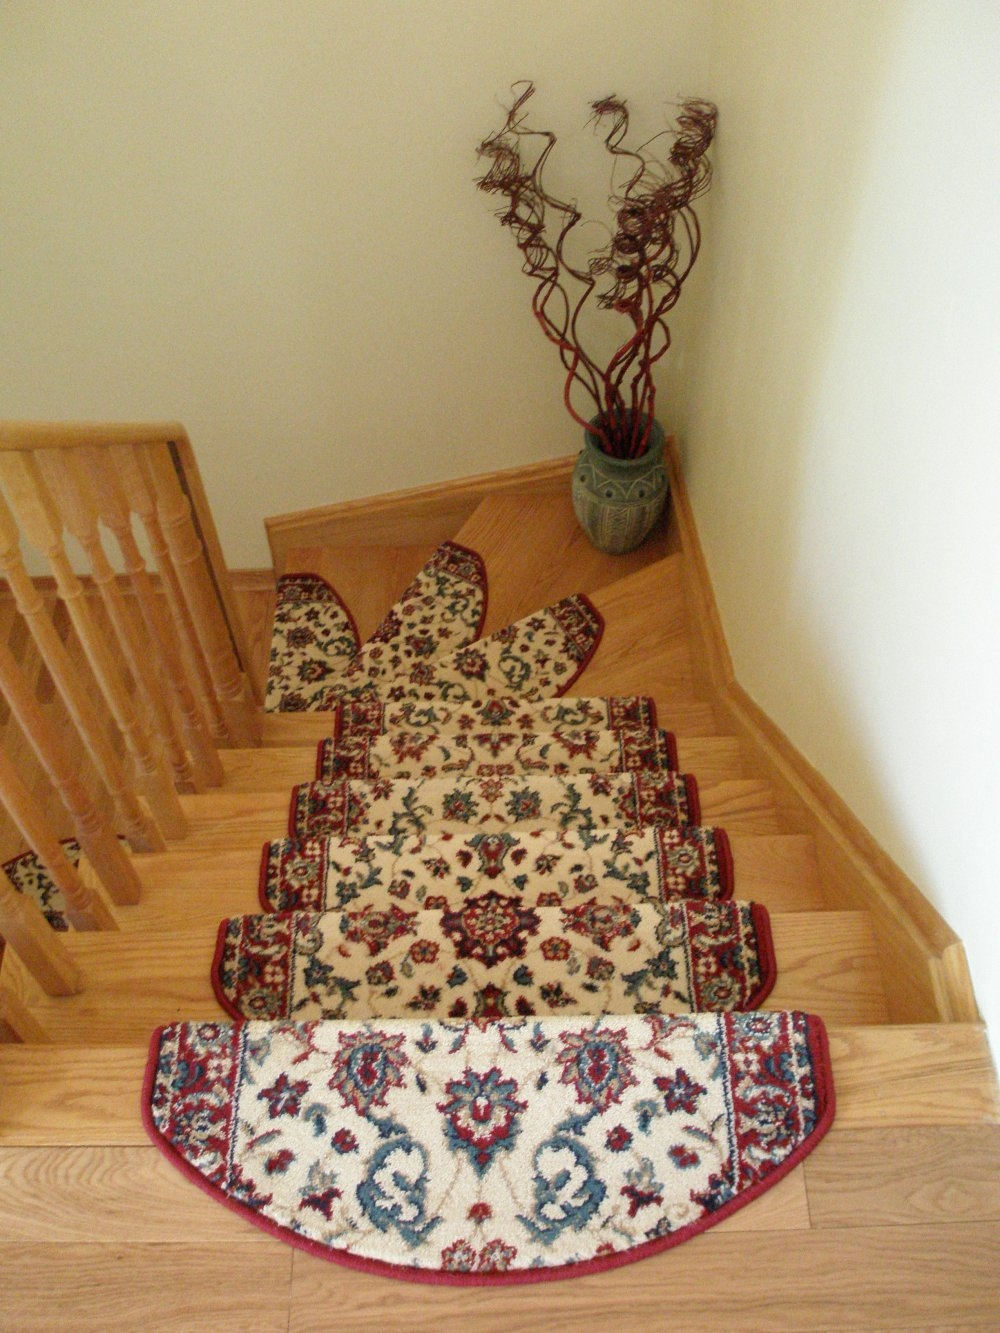 Flooring Pretty Stair Treads Carpet For Stair Decoration Idea Pertaining To Stair Tread Rug Pads (#9 of 20)